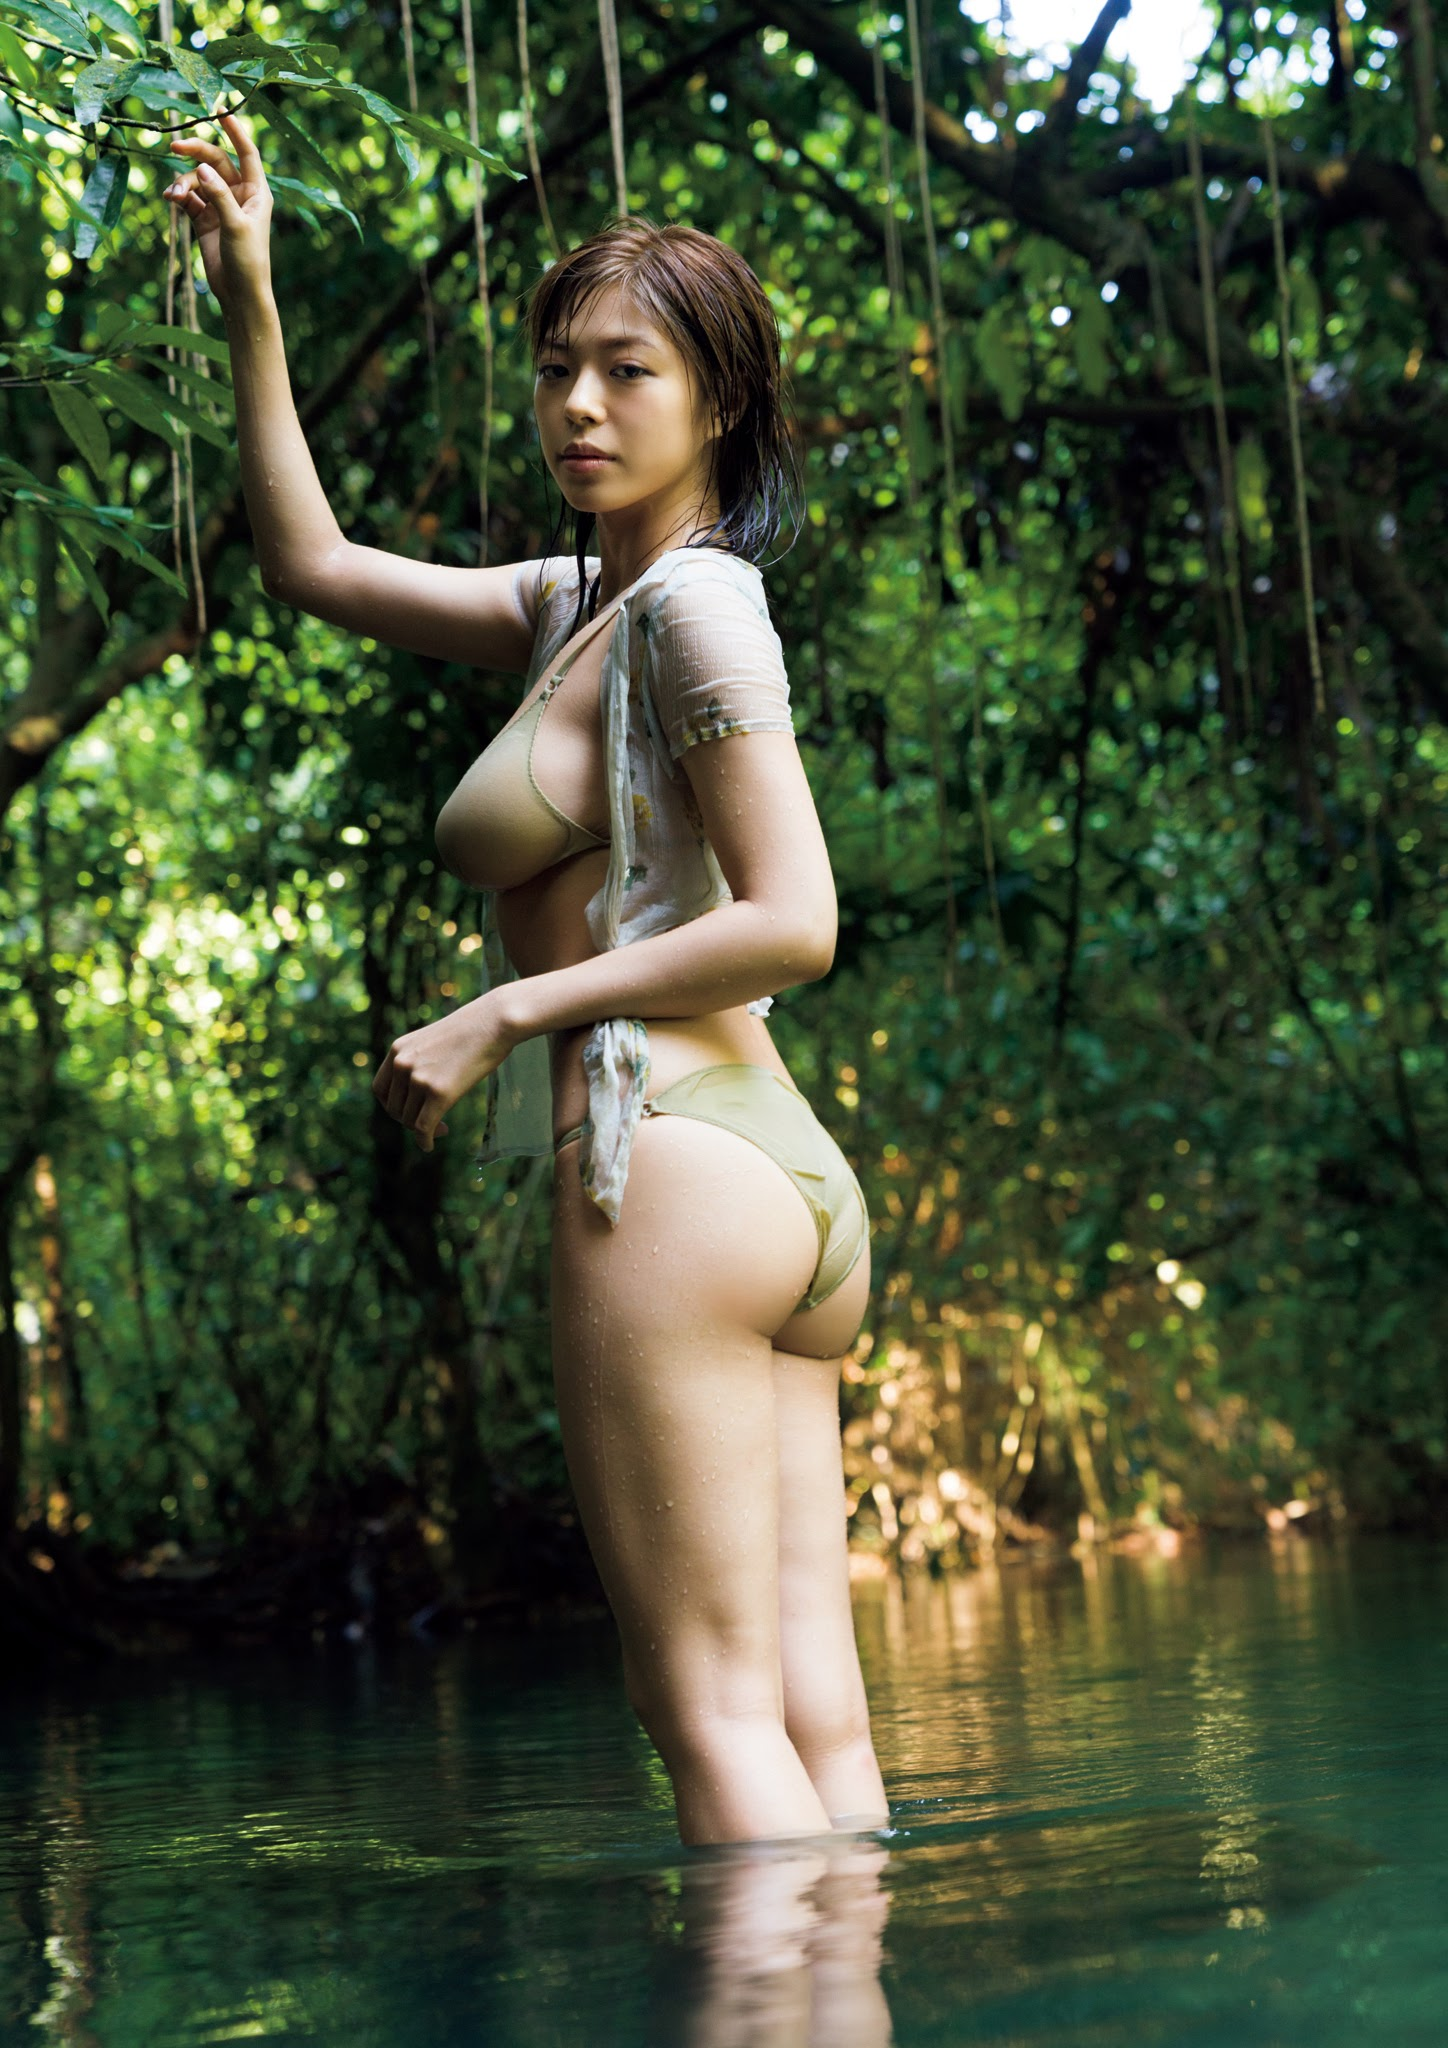 Super body of H cup Minami Wachi 2020 that exposes body and mind in tropical Thailand039